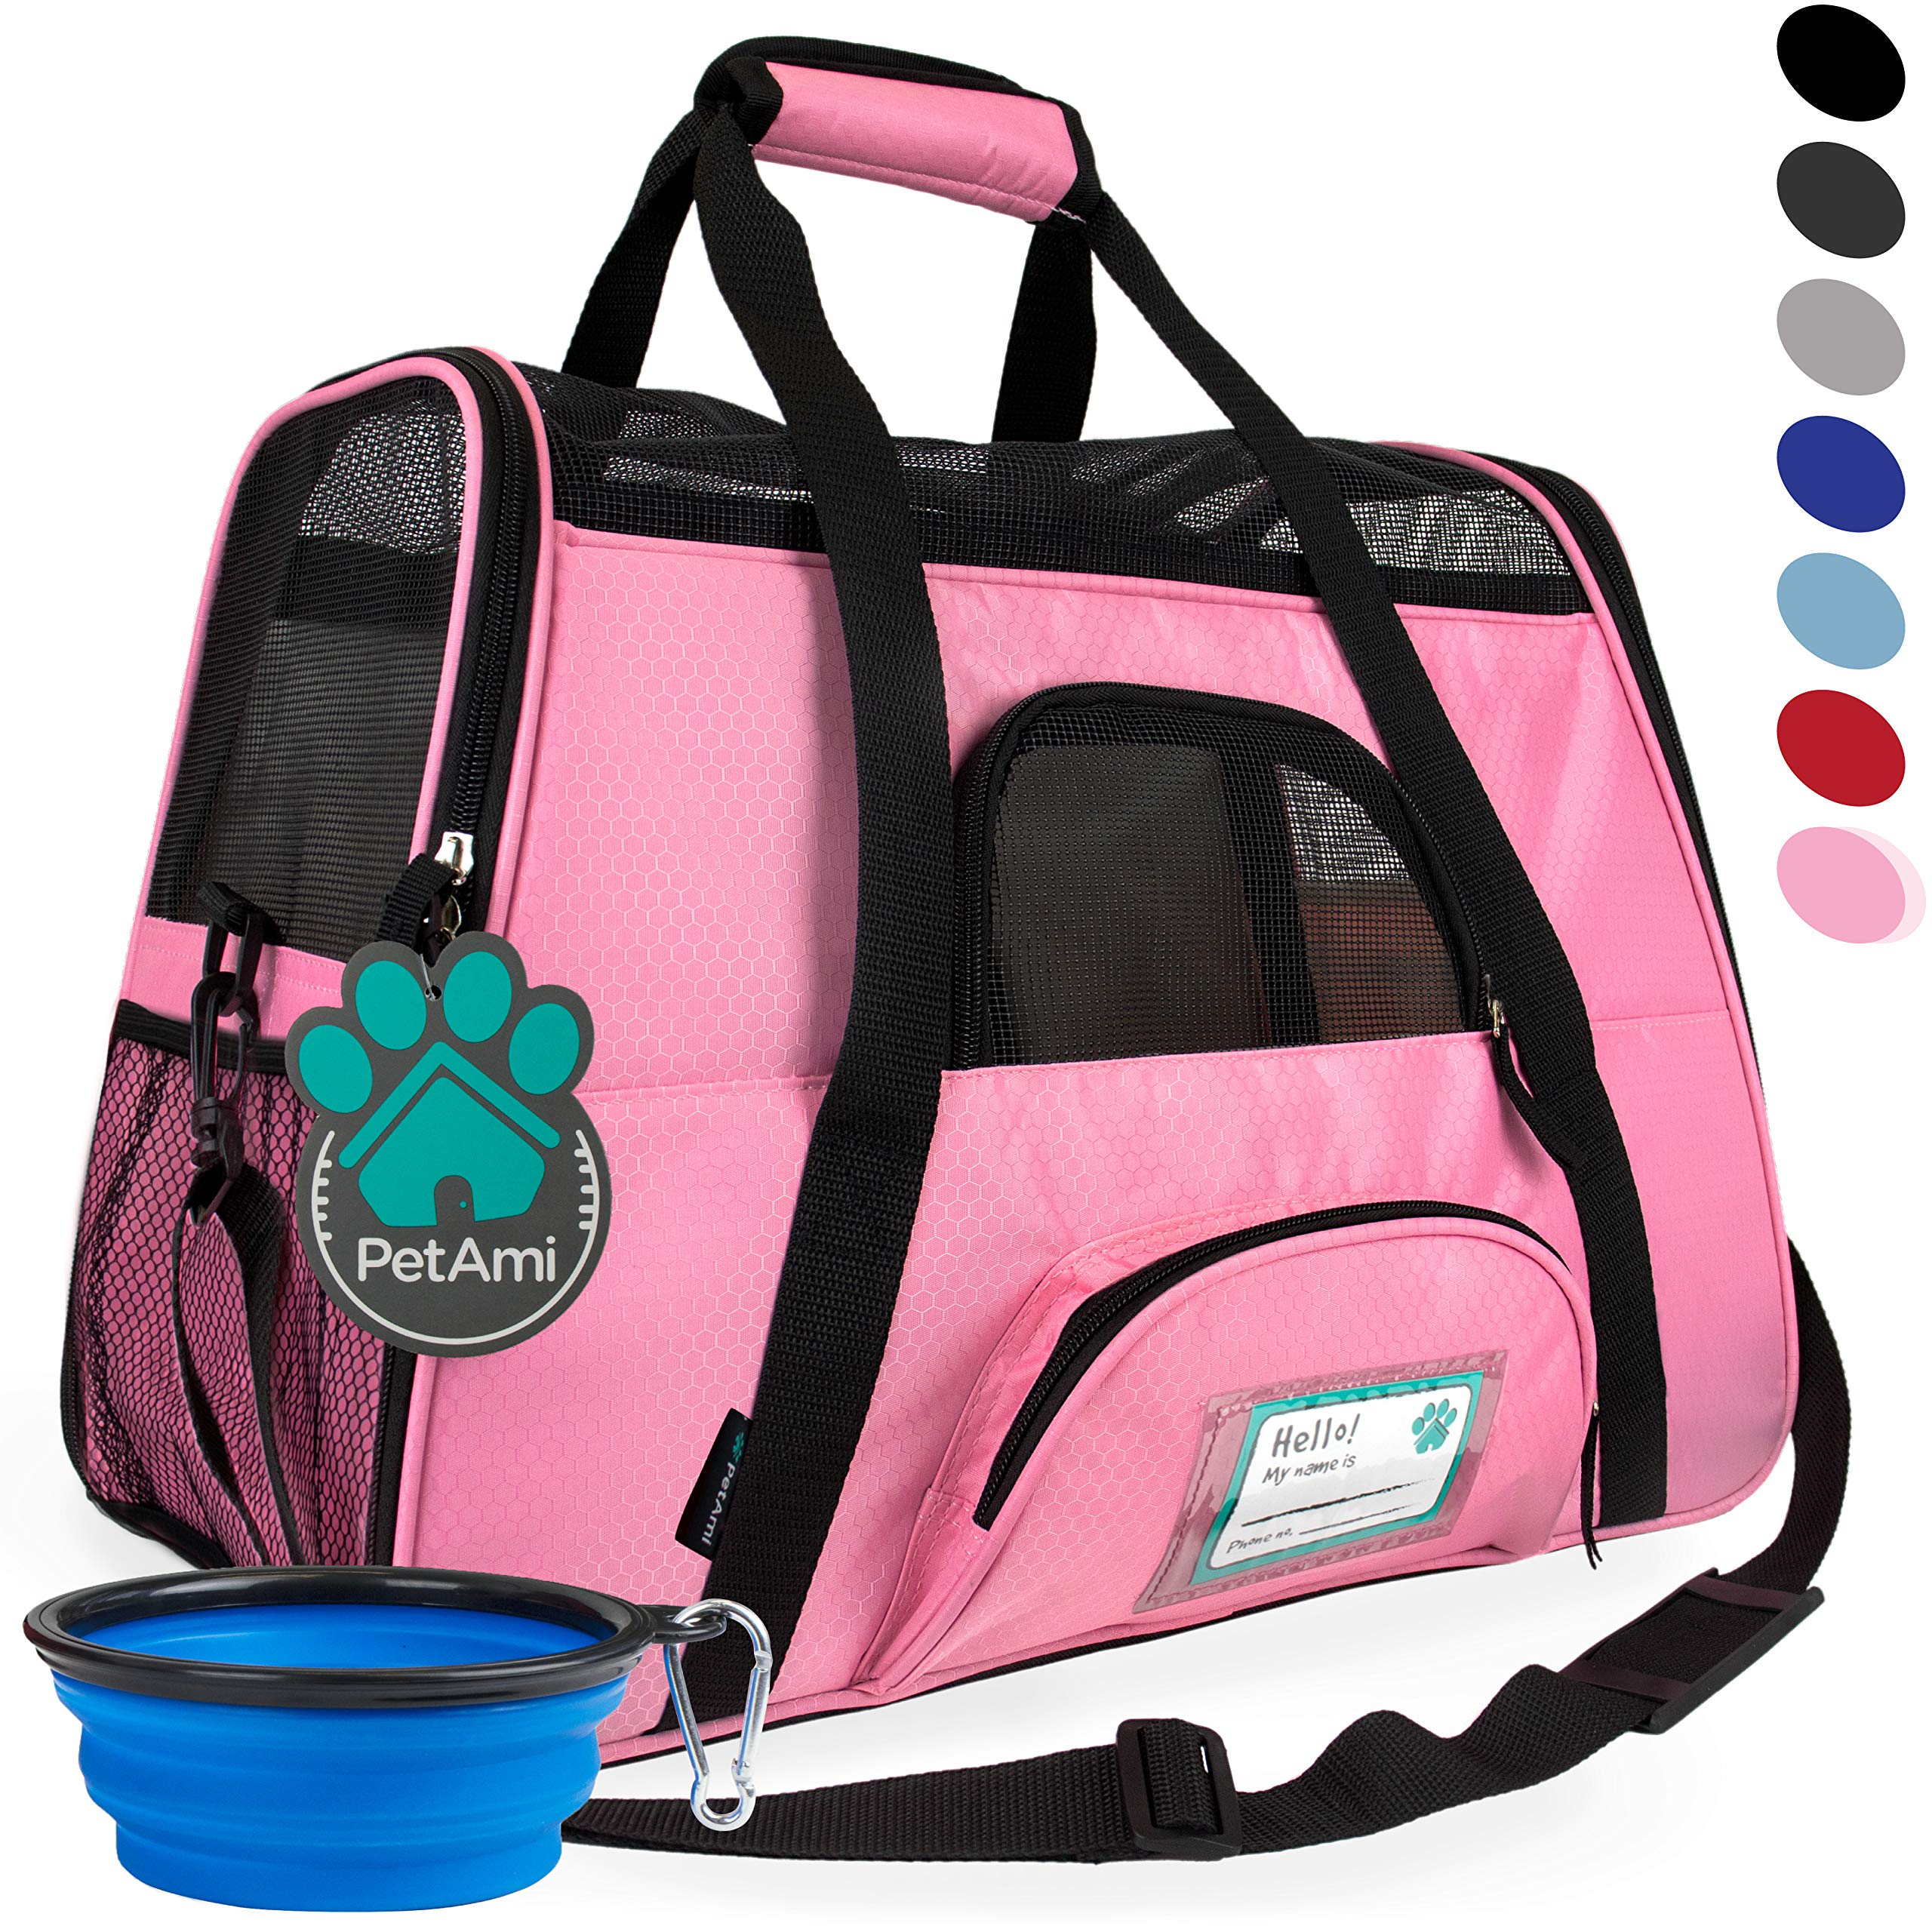 PetAmi Premium Airline Approved Soft-Sided Pet Travel Carrier | Ideal for Small - Medium Sized Cats, Dogs, and Pets | Ventilated, Comfortable Design with Safety Features (Small, Pink) by PetAmi